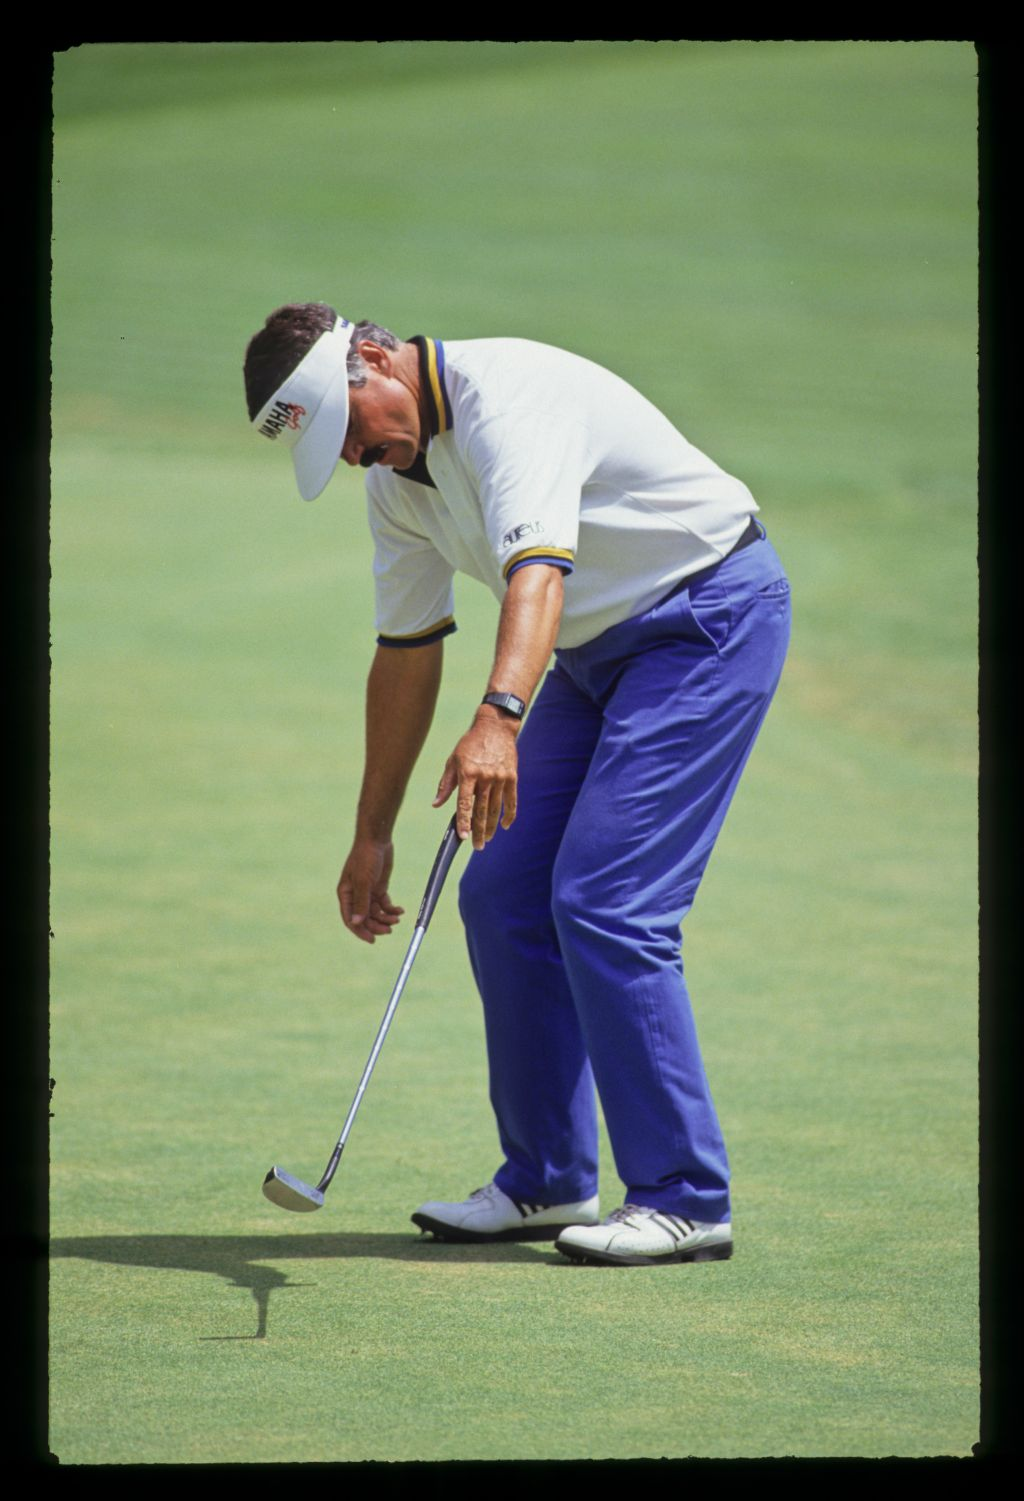 Scott Simpson dropping his putter and showing emotion on the green during the 1991 US Open